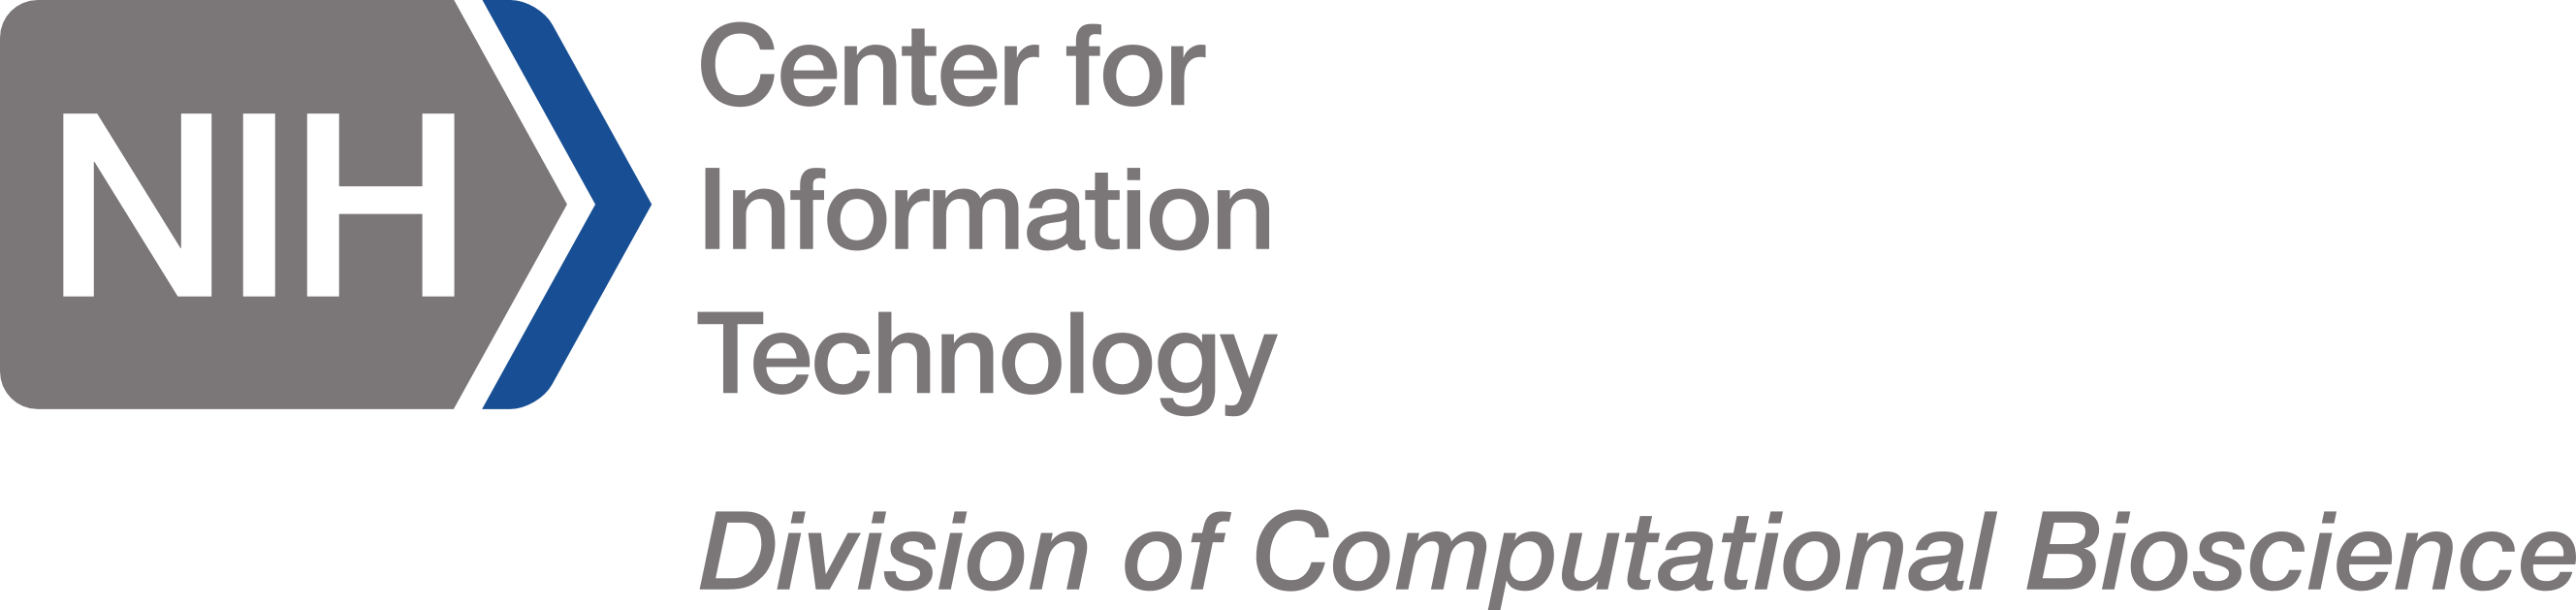 National Institutes of Health - Center for Information Technology - Division of Computational Bioscience